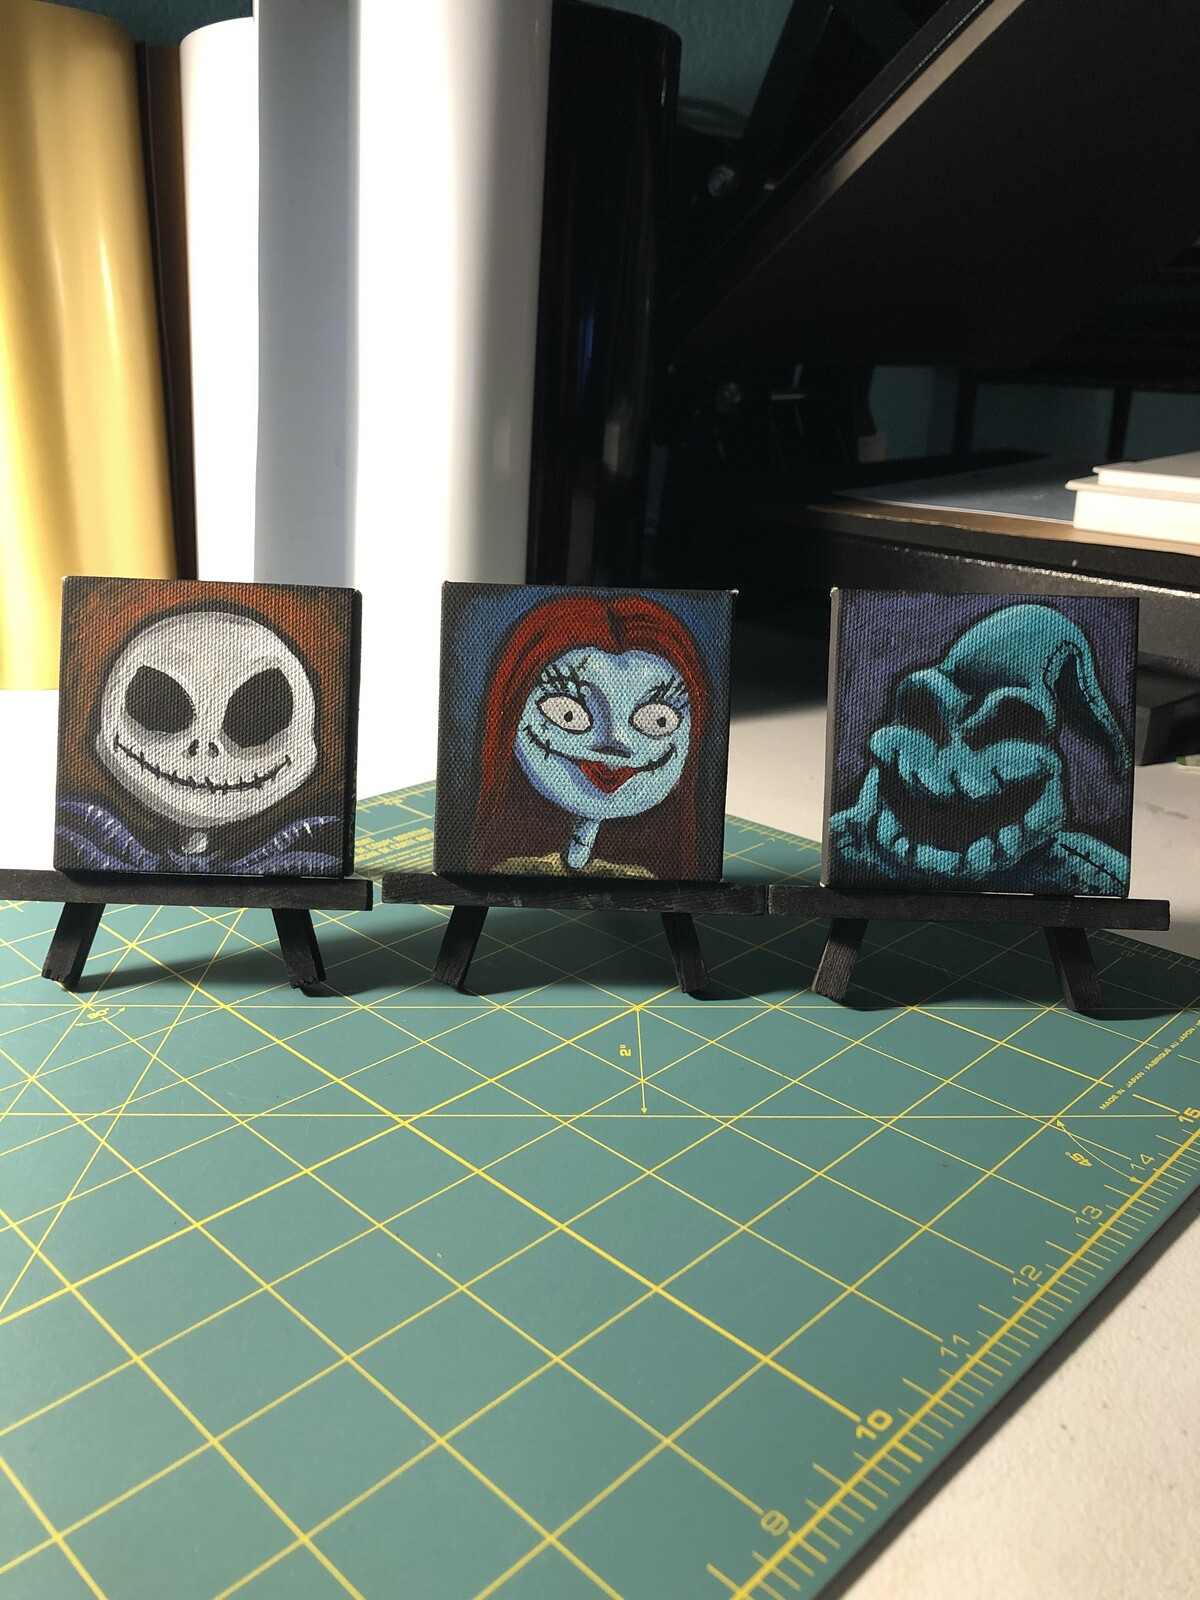 Nightmare Before Christmas, Jack, Sally and Oogie Boogie